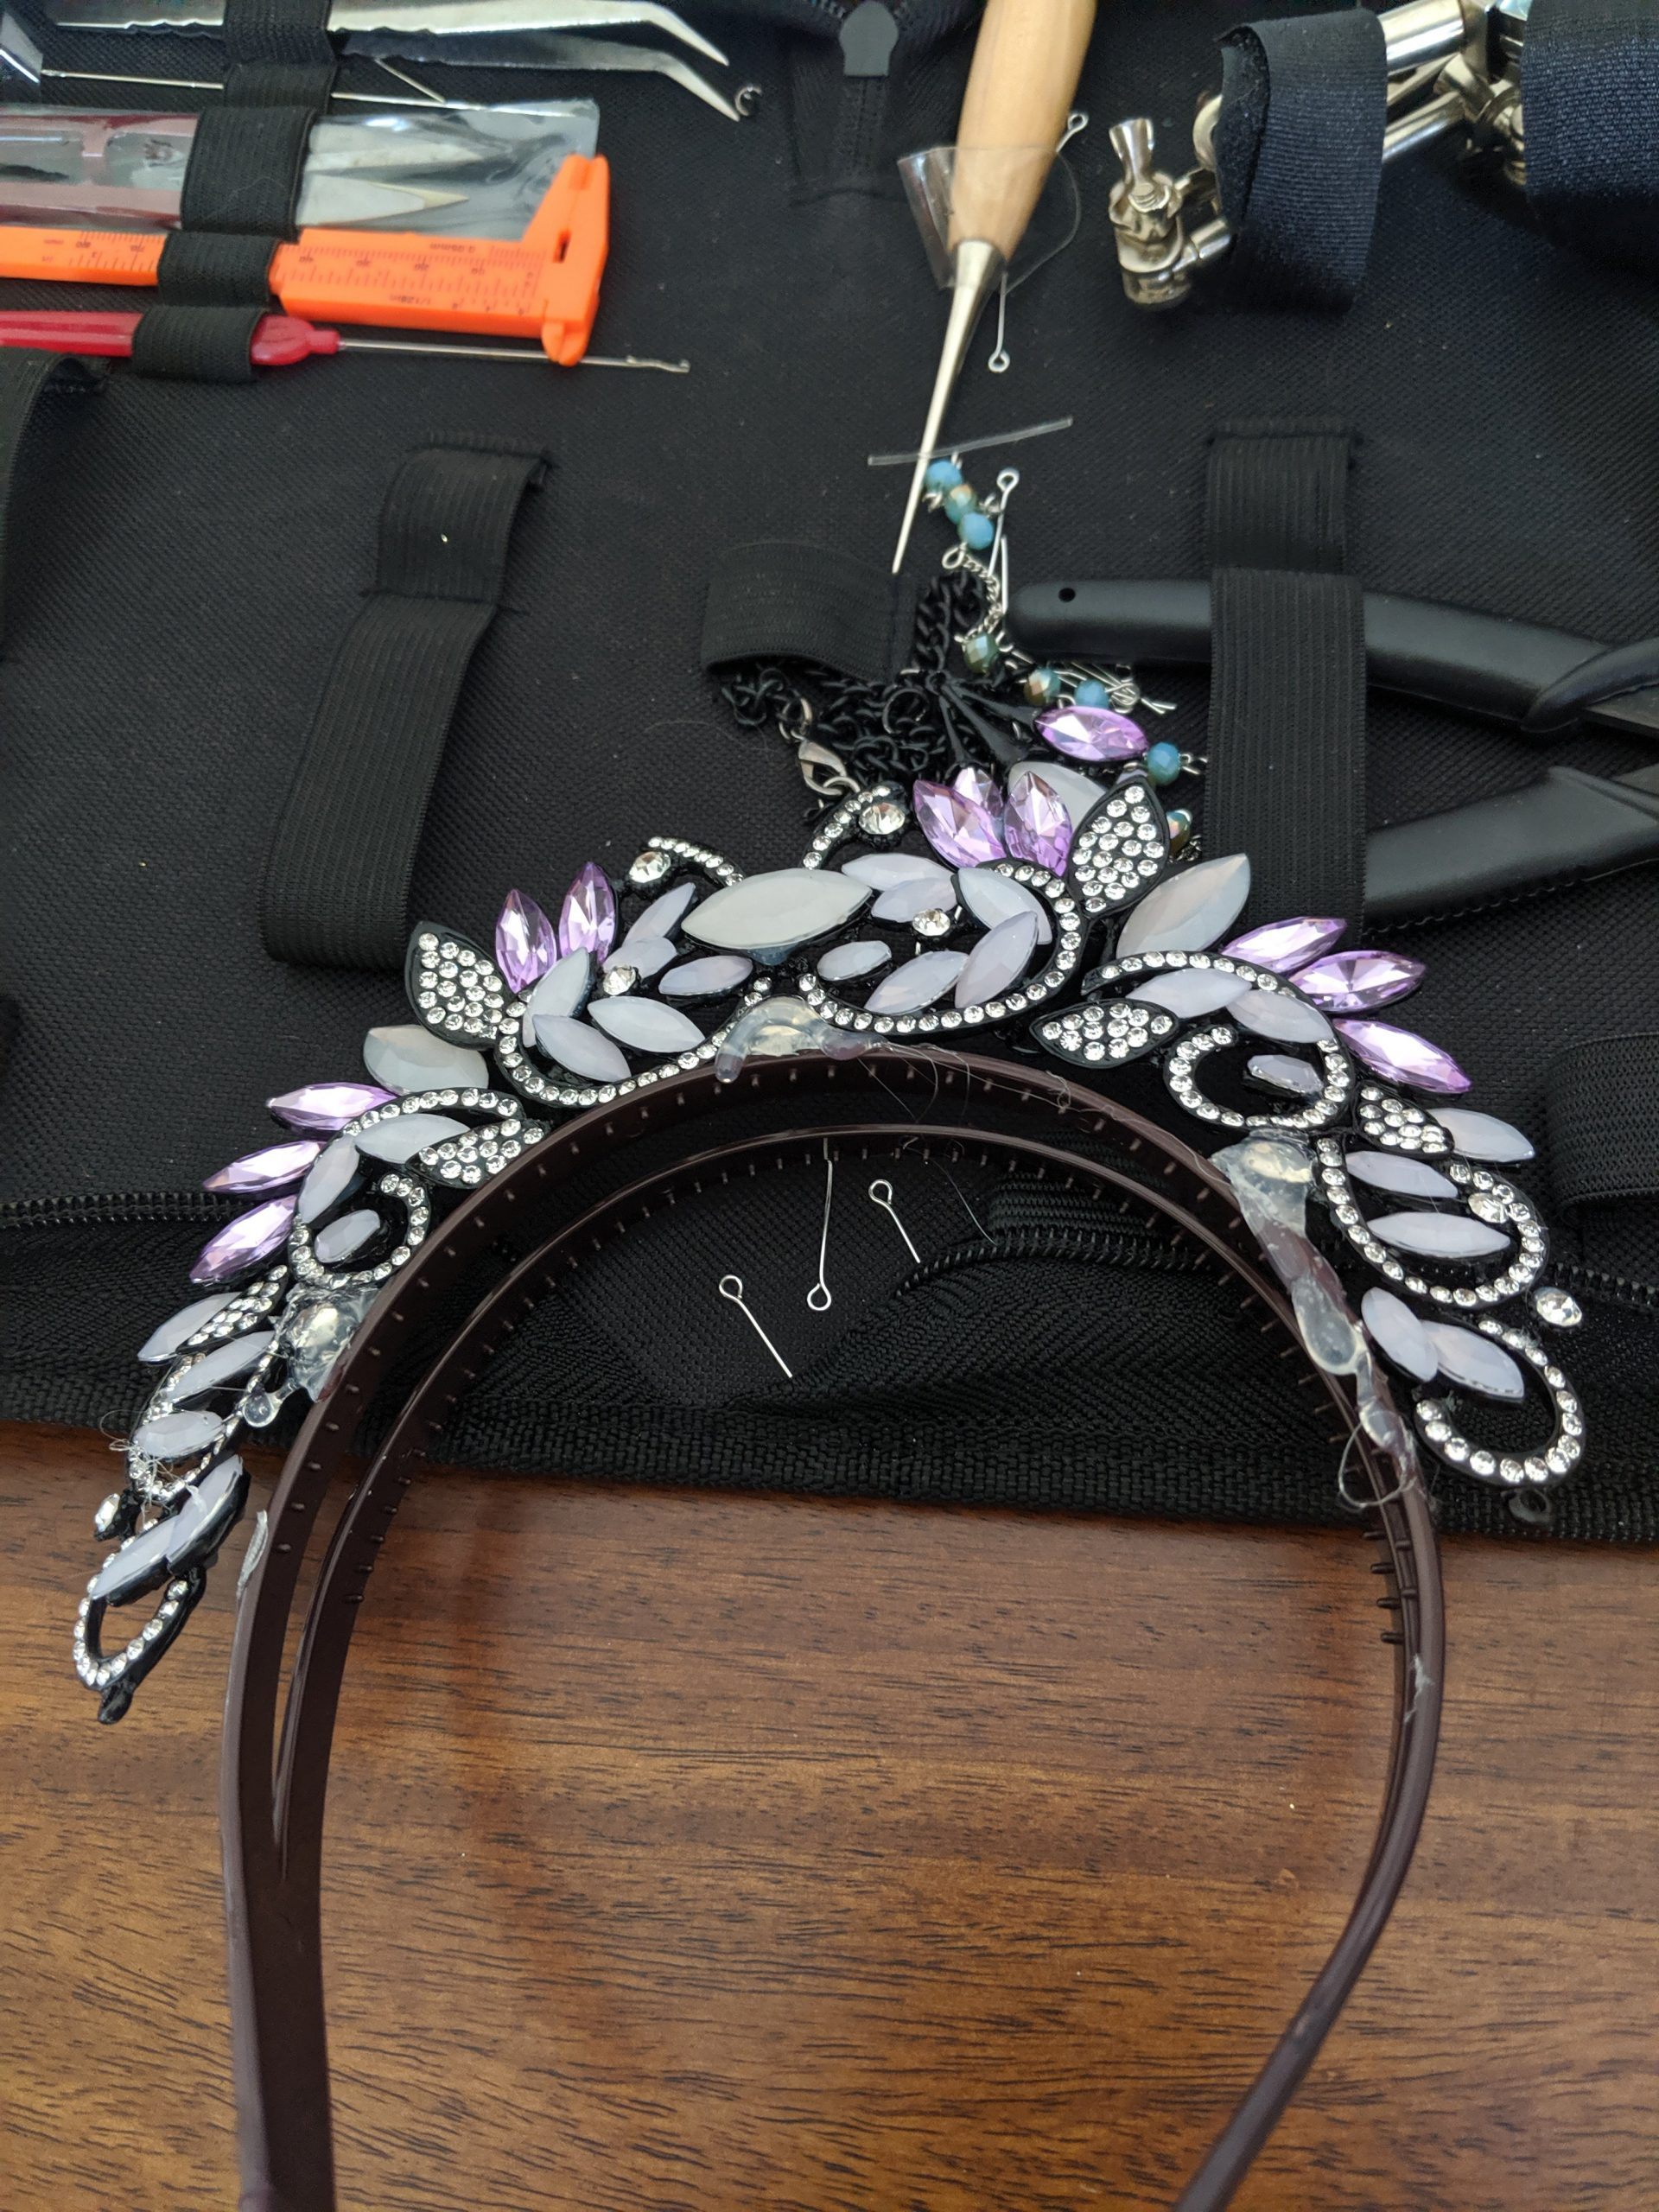 Glue the necklace to the headband and then wrap with wire to complete